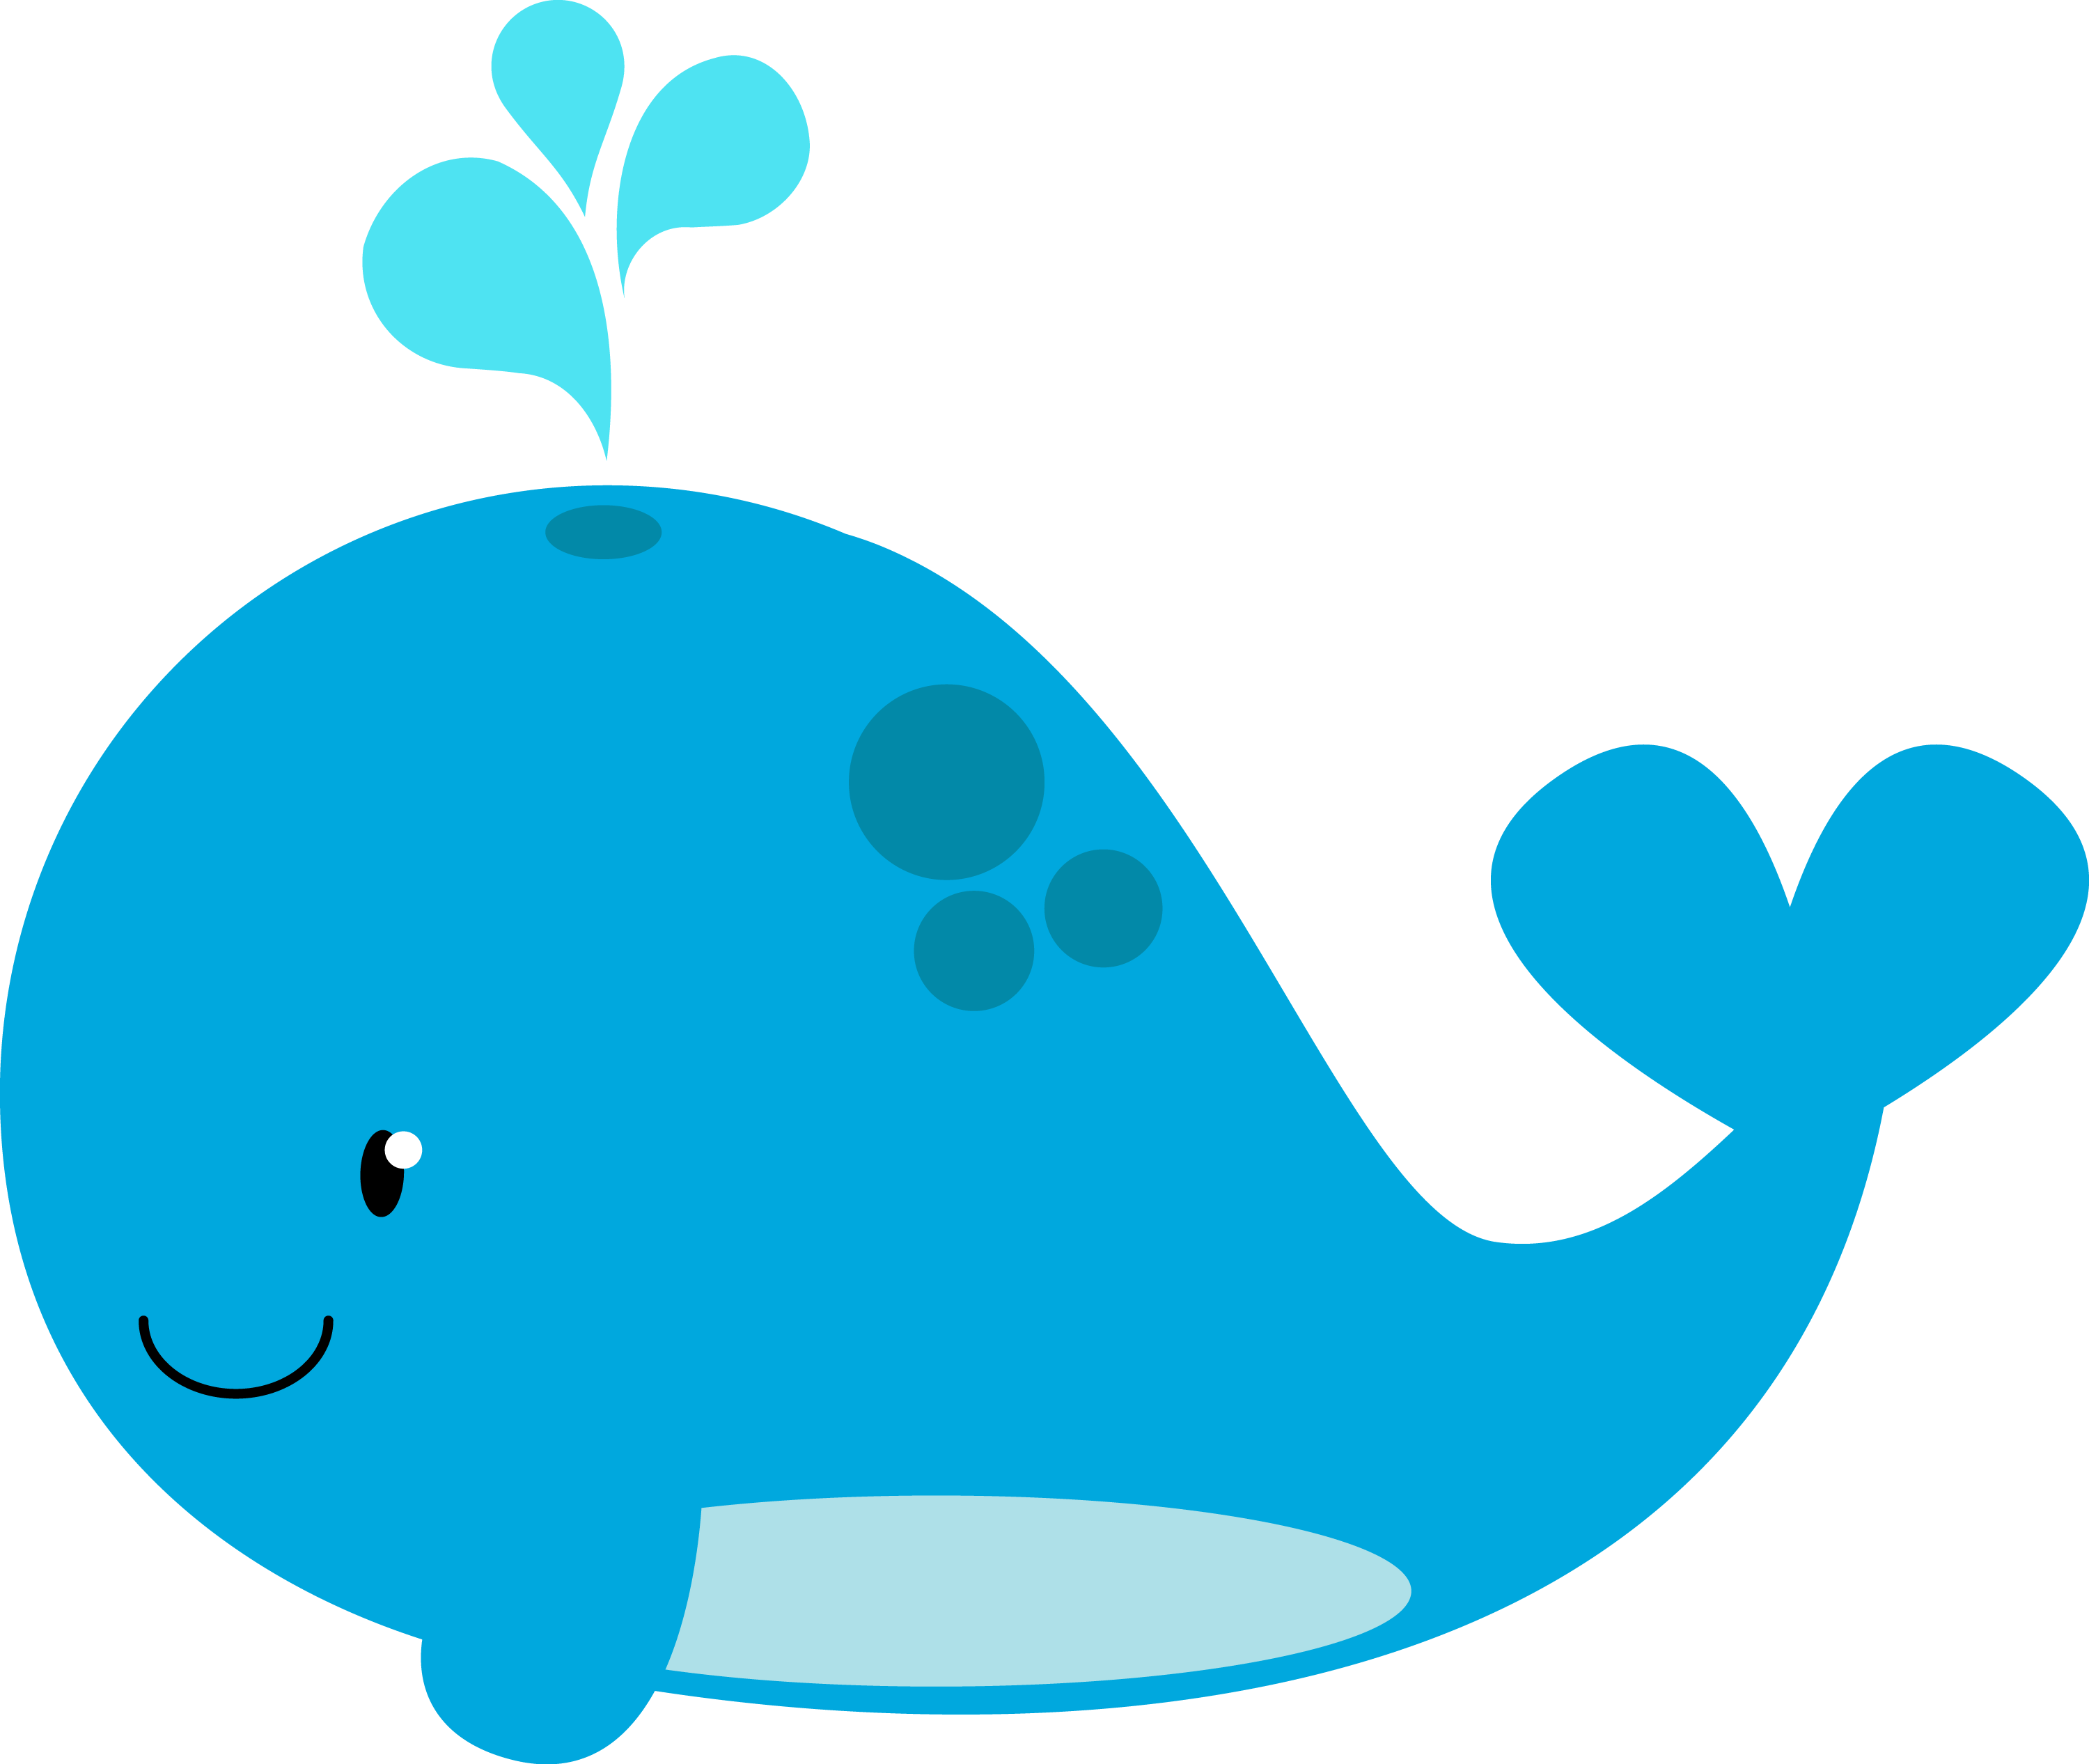 Chubby Blue Whale Symbol Image image #47806